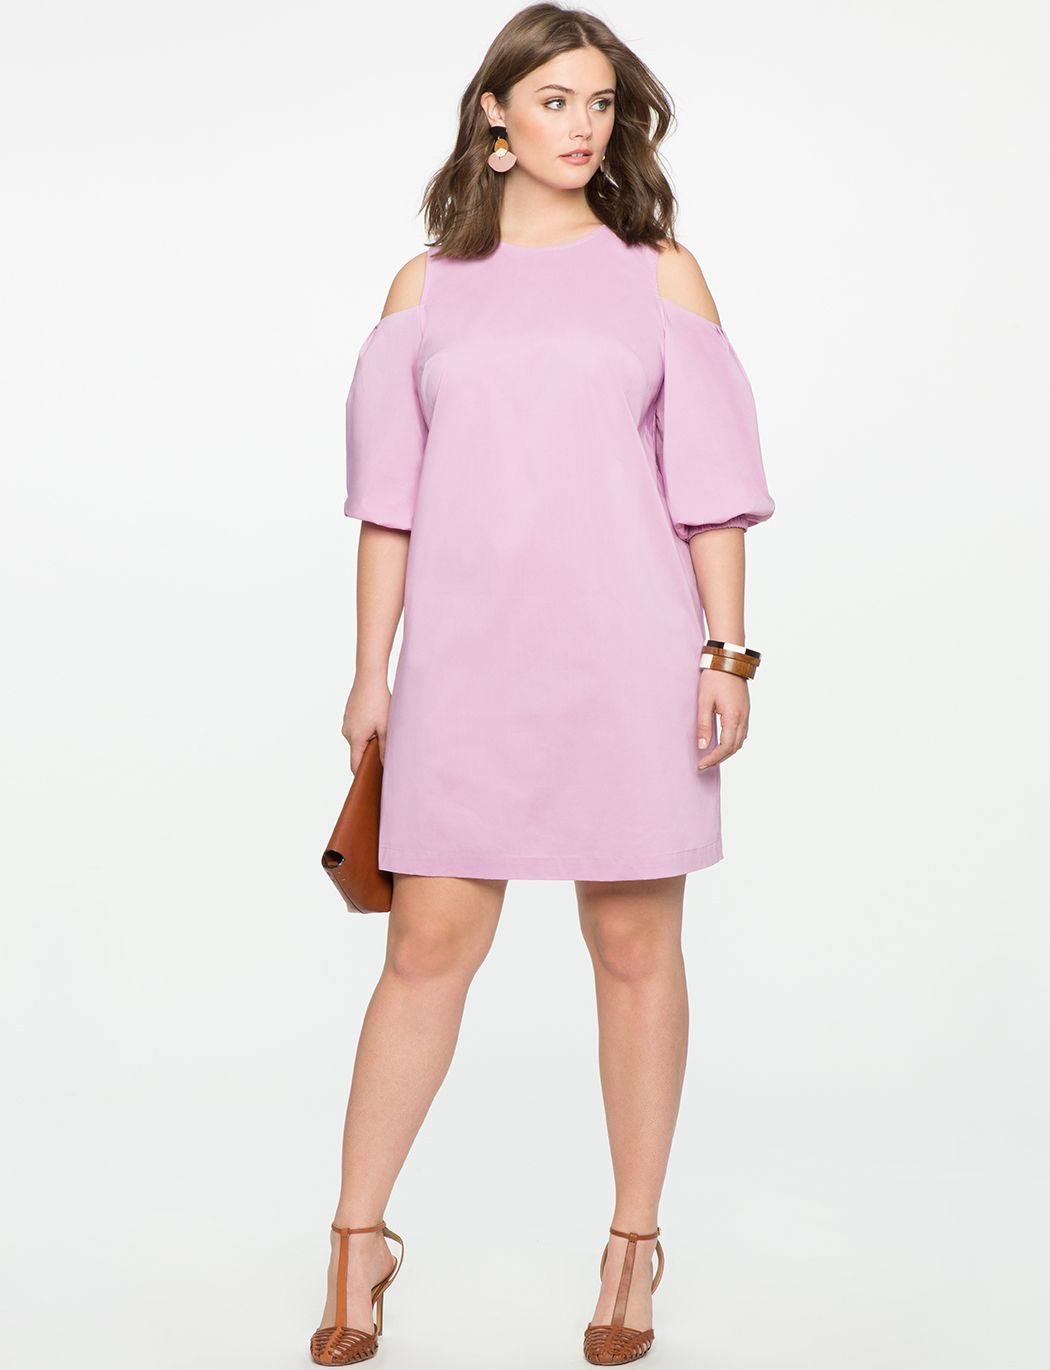 4fdf2c12b1da6 Cold Shoulder Puff Sleeve Dress